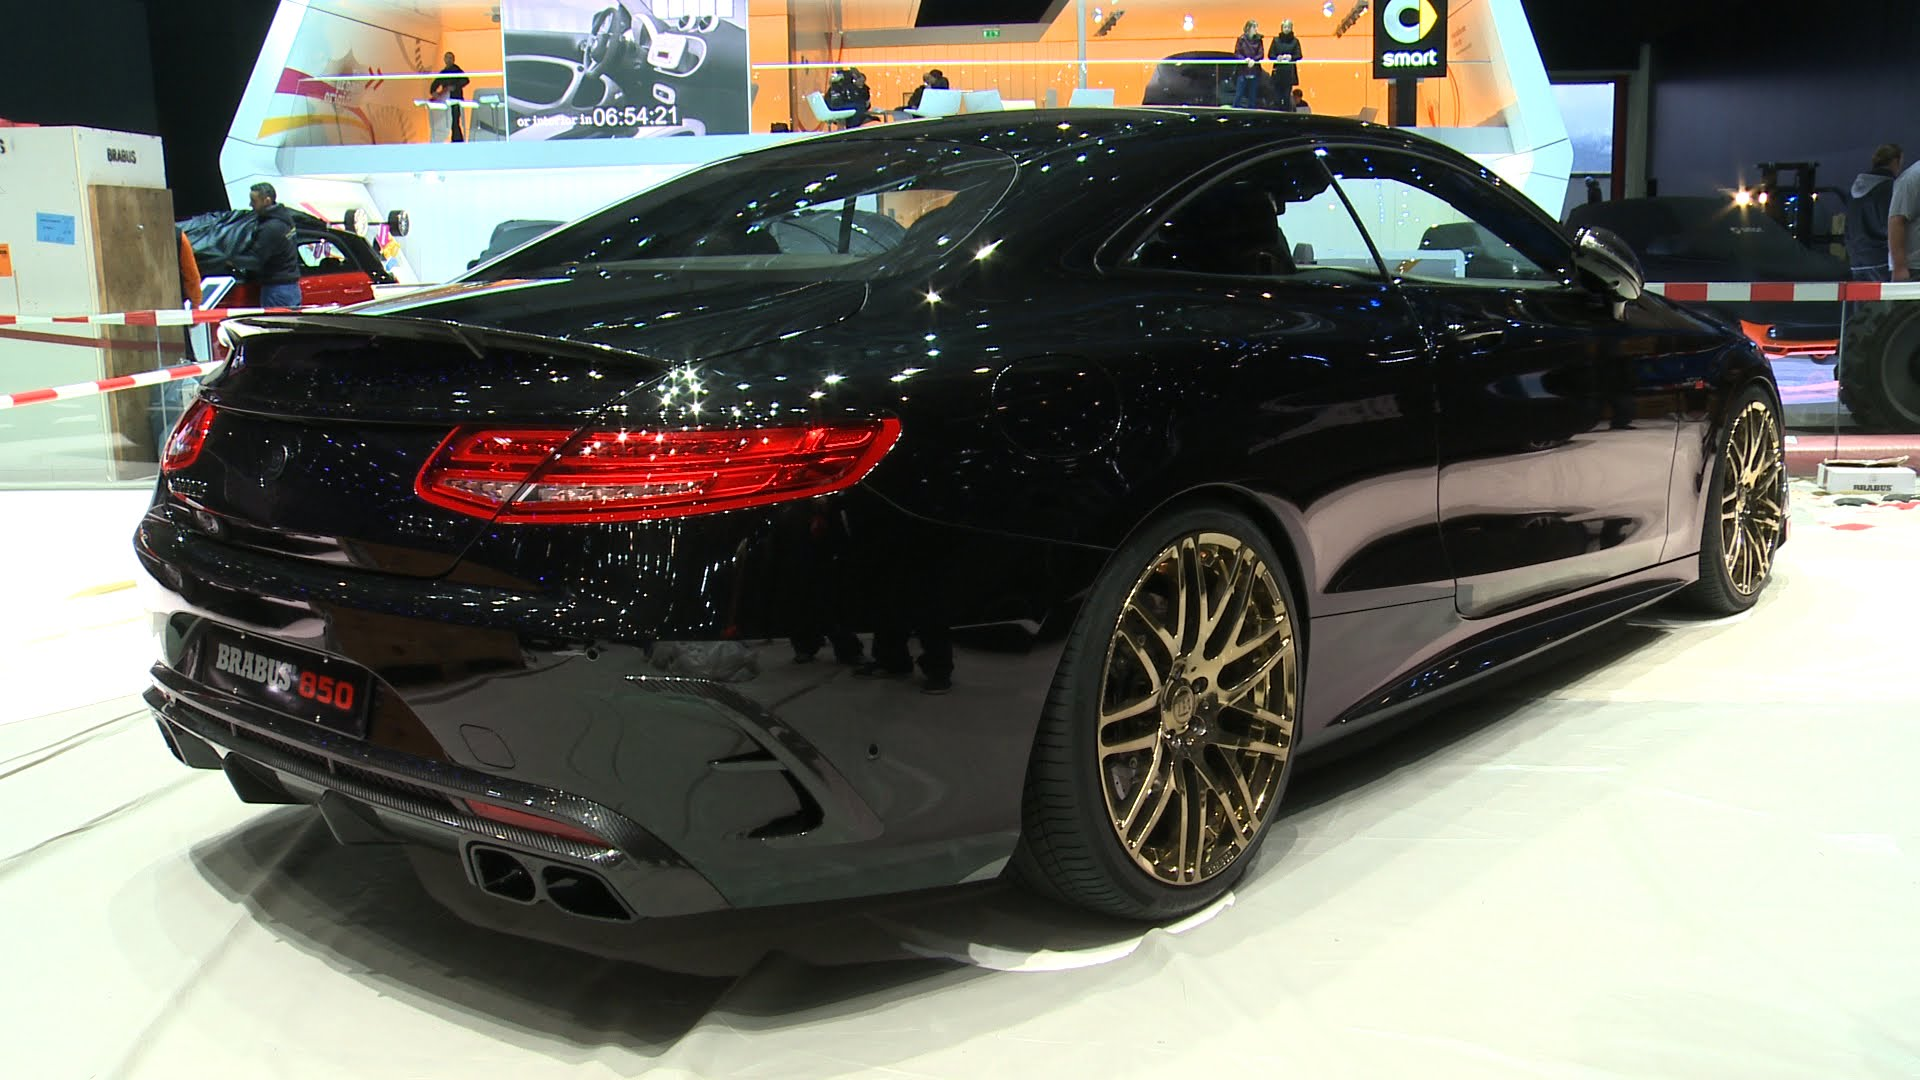 Brabus S63 850 Coupe Interior And Exterior Details